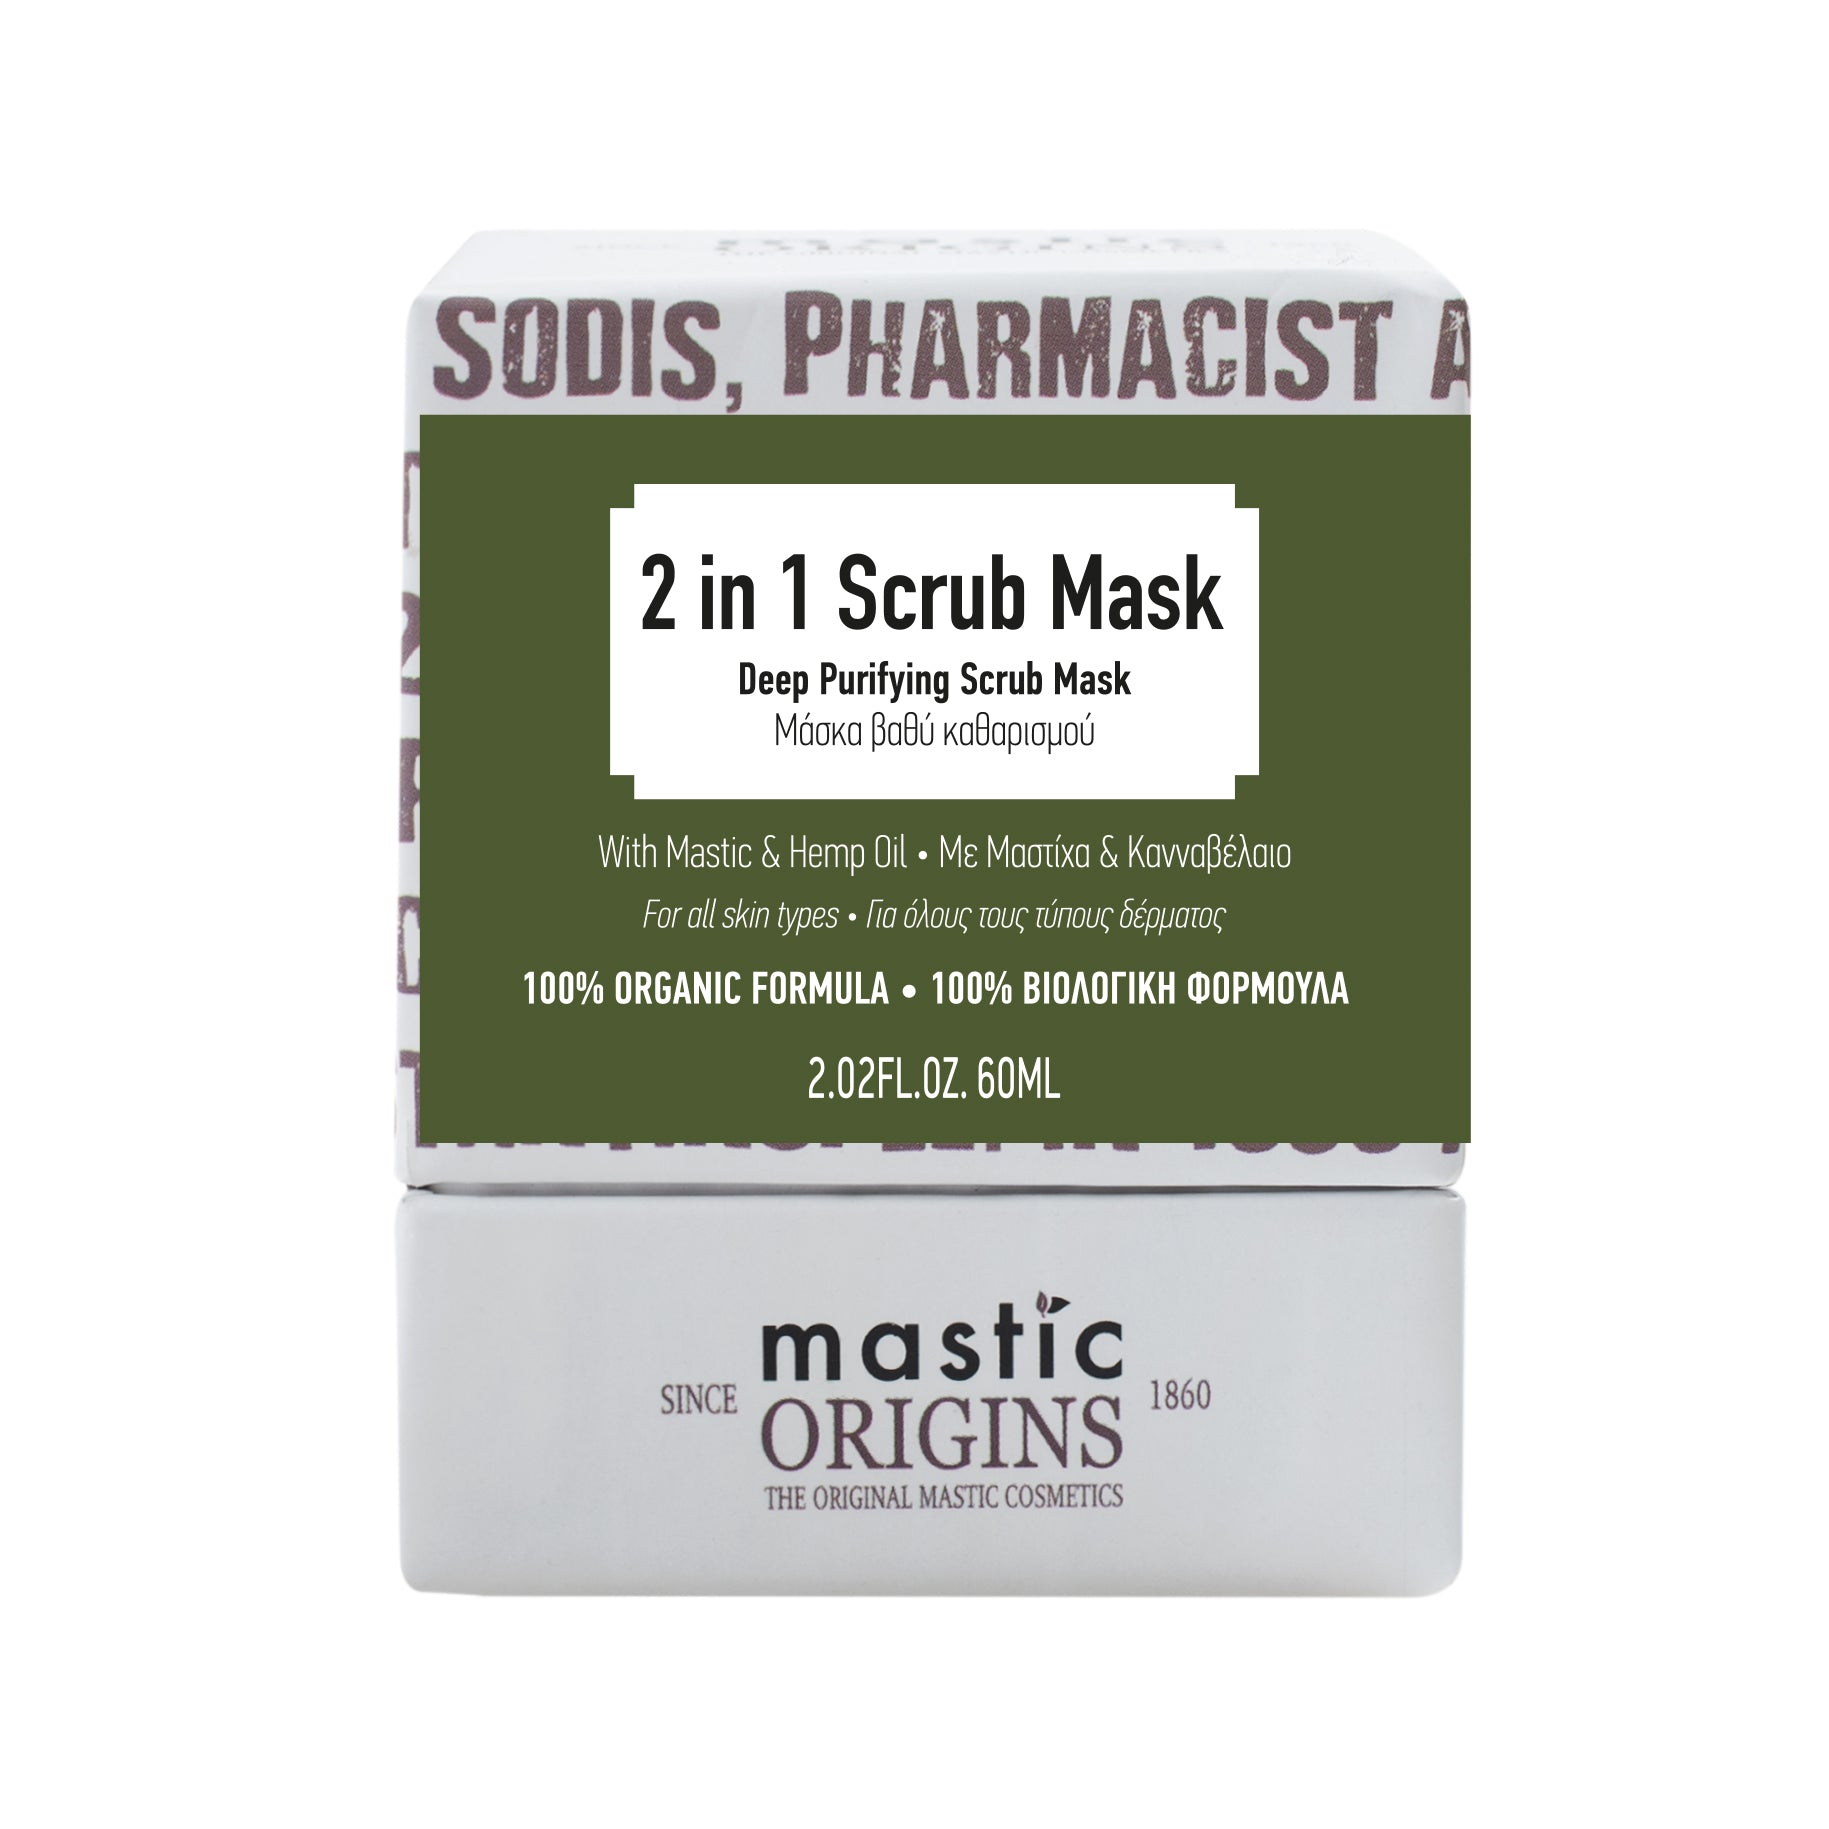 2 in1 Scrub Mask